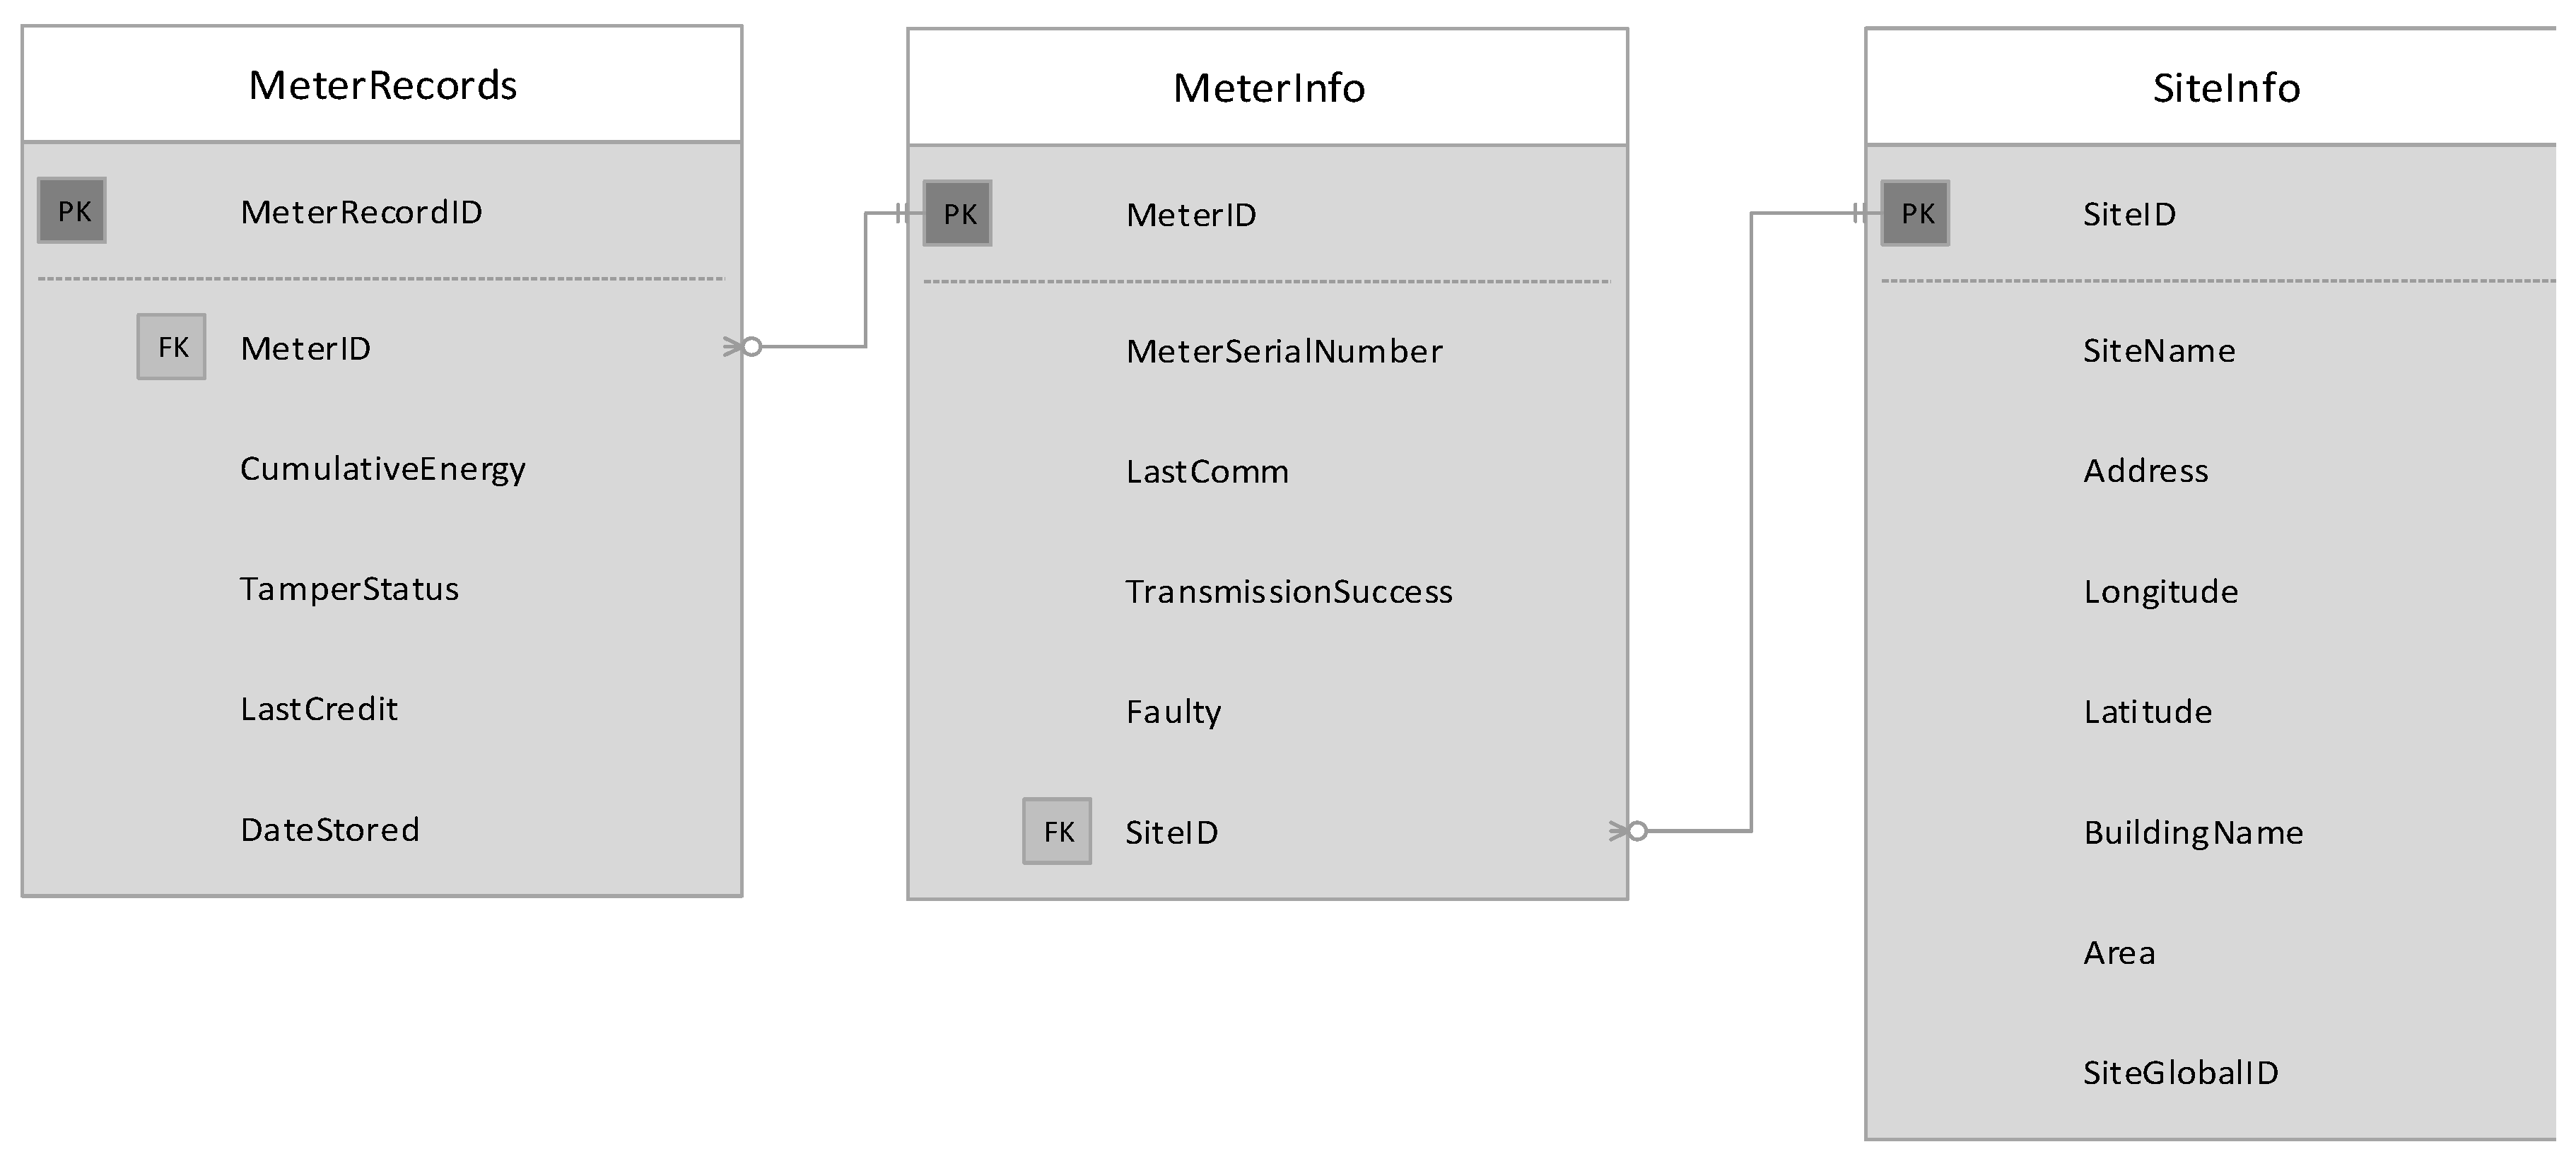 Sensors | Free Full-Text | Smart Meter Data Collection Using Public